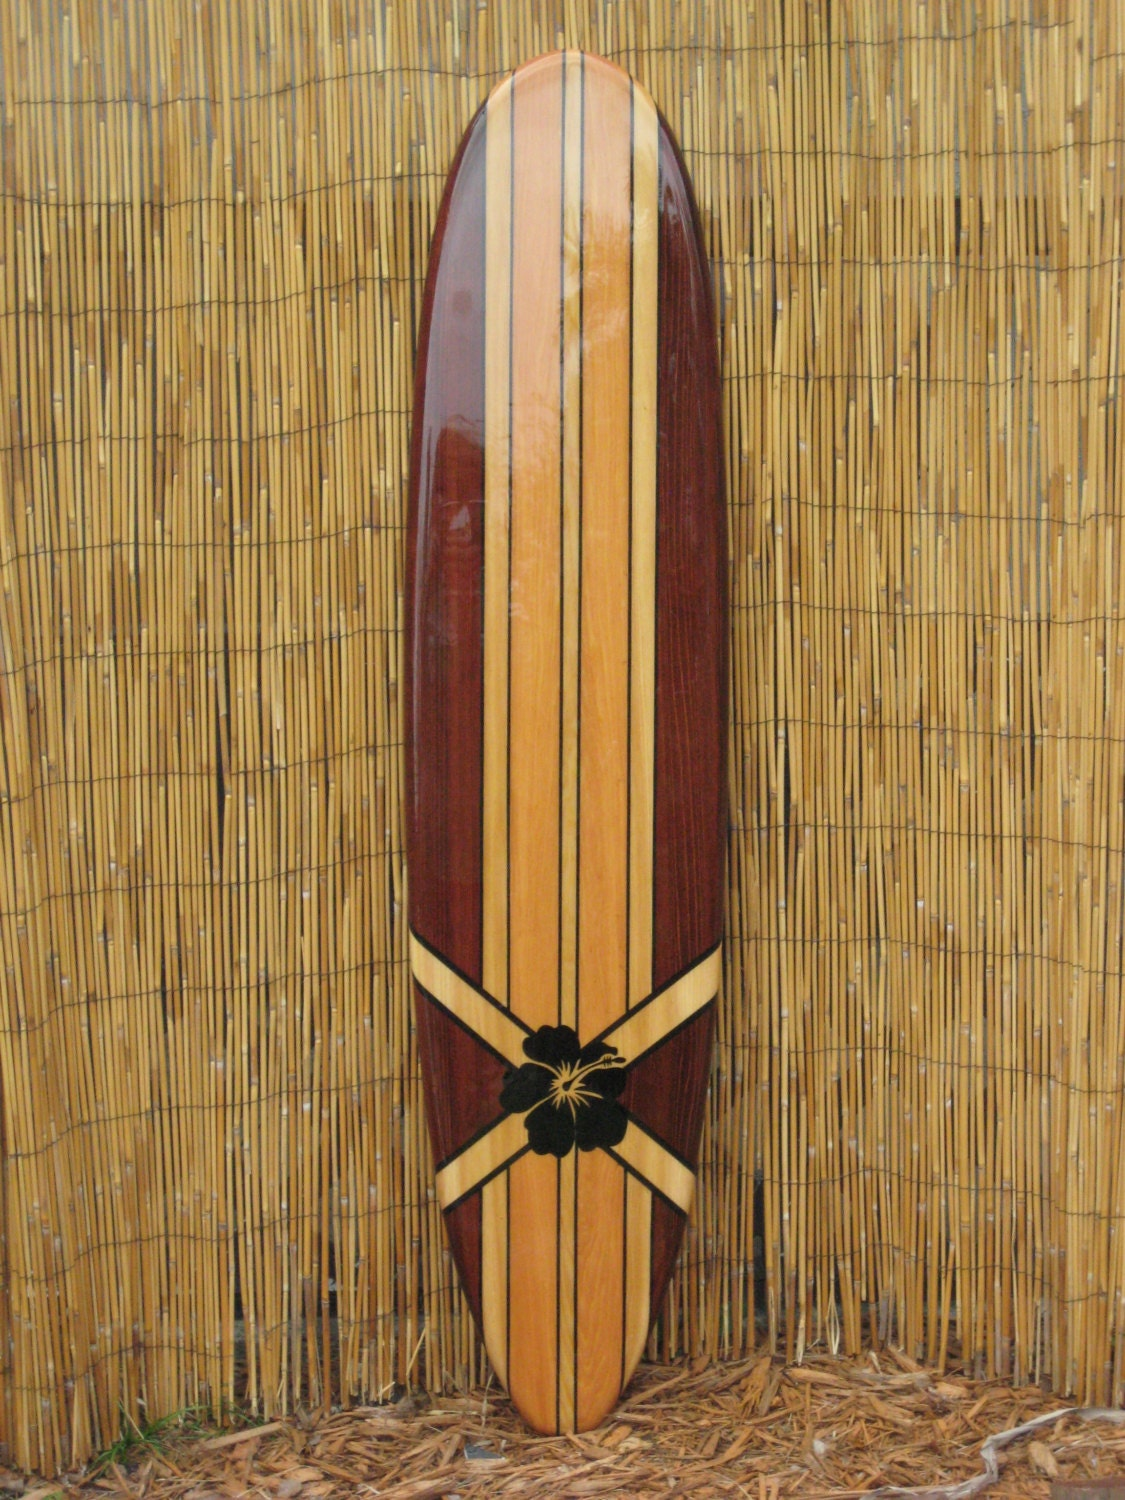 Surfboard Wall Art wooden decorative surfboard wall art wall hanging or beach